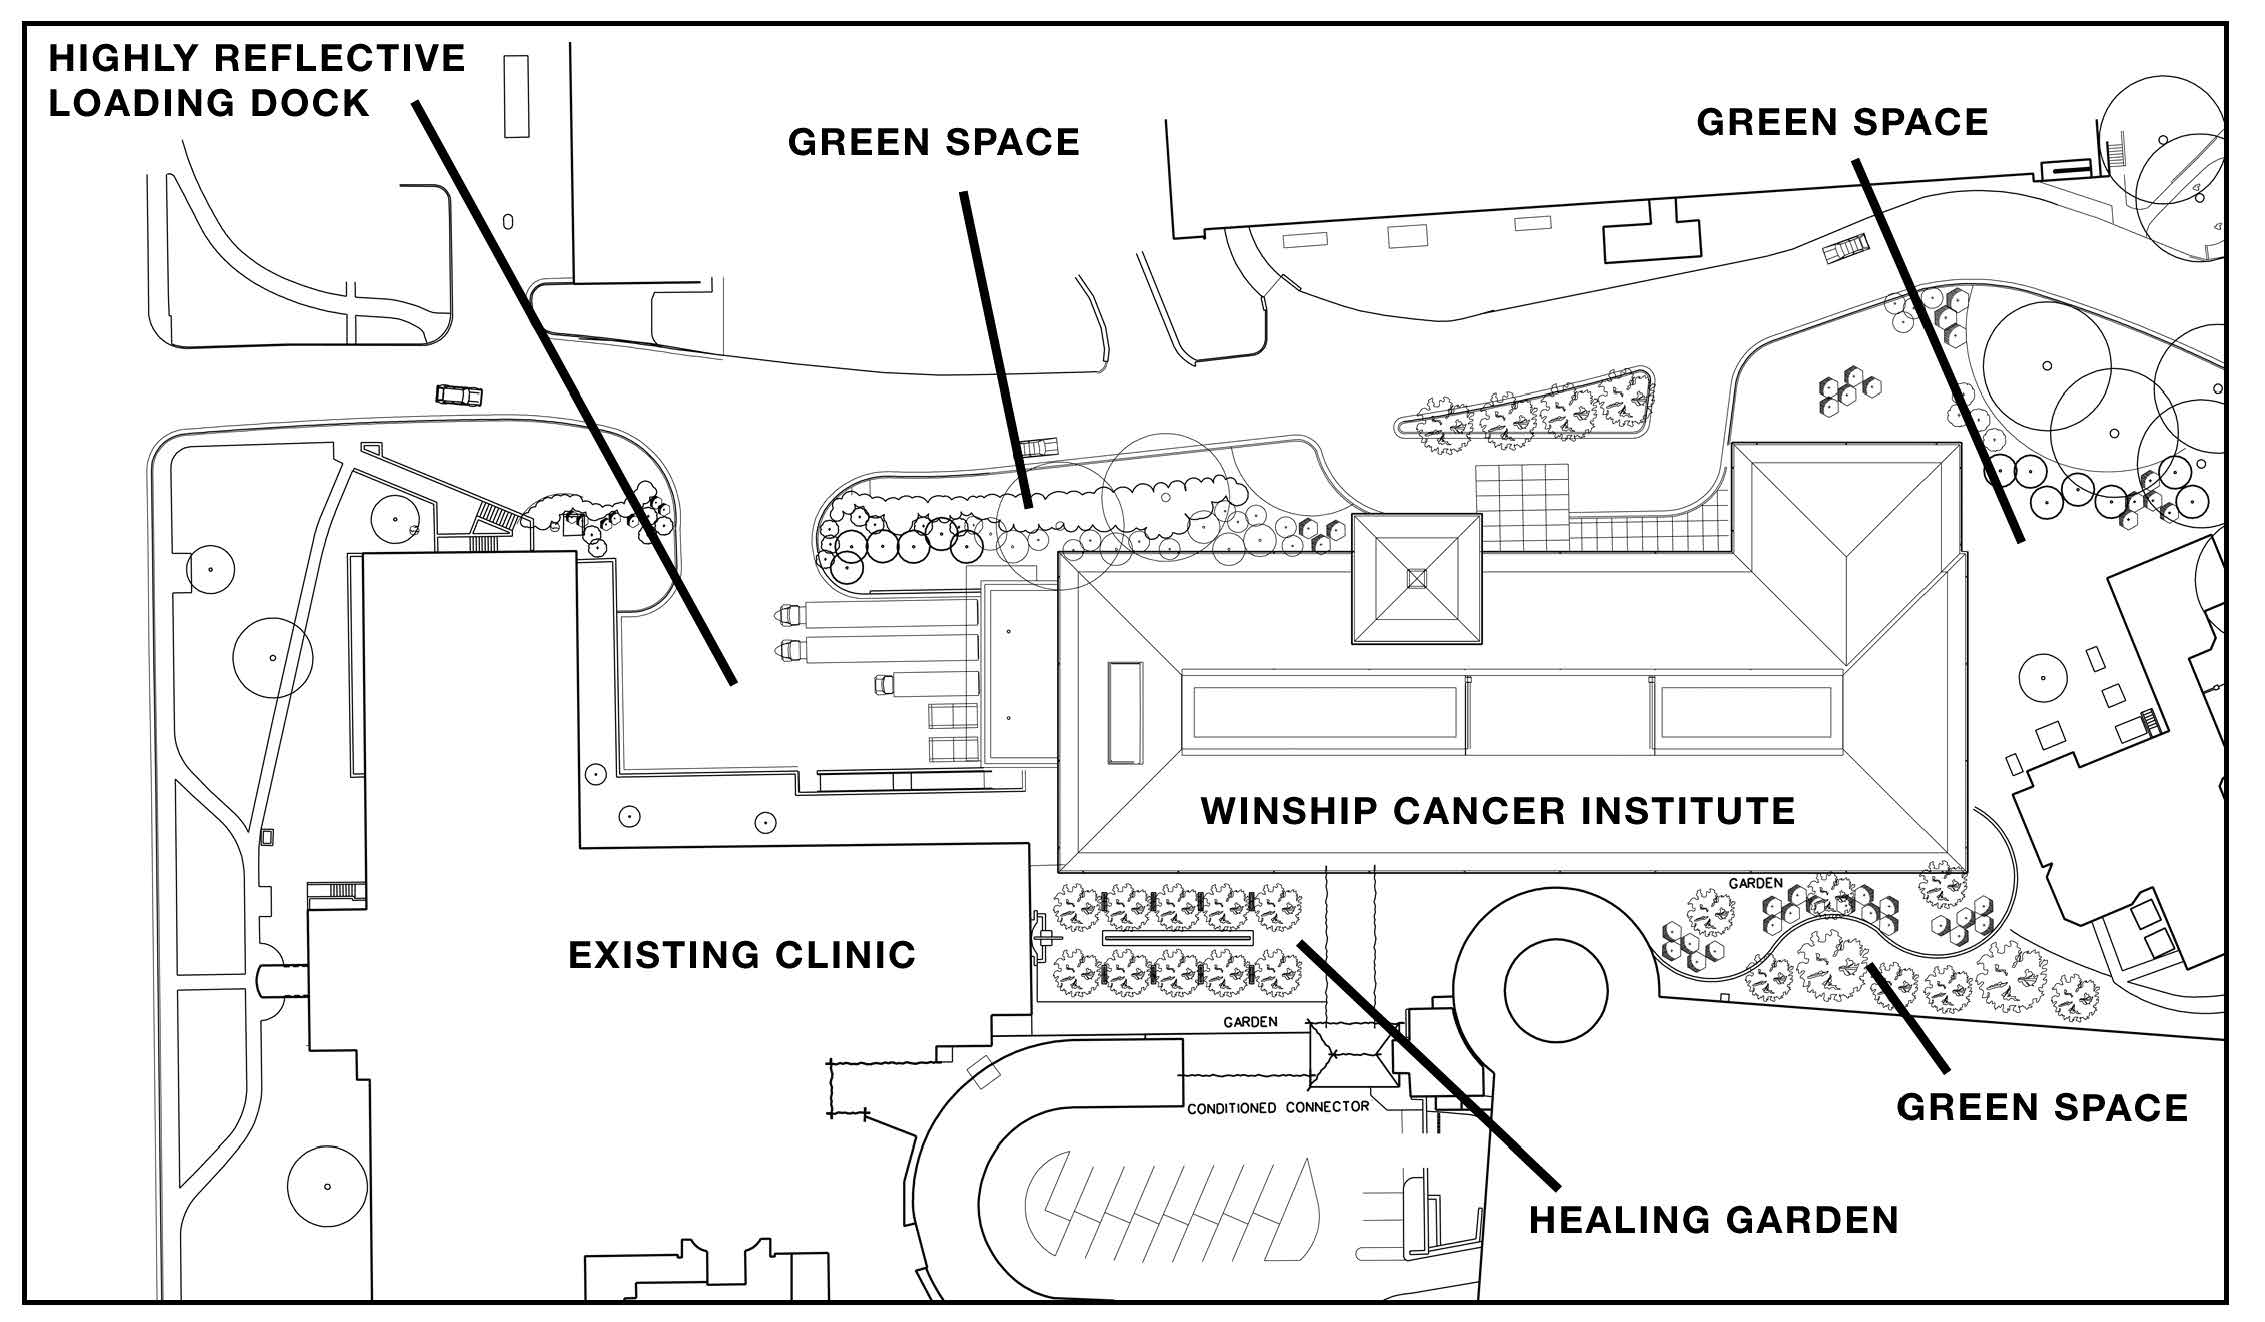 Figure 1. The site, while constrained, retains green space to the east. A healing garden integrated between structures provides a place for reflection. A highly reflective surface minimizes heat gain at the elevated loading dock. Illustration by Stanley Beaman & Sears.